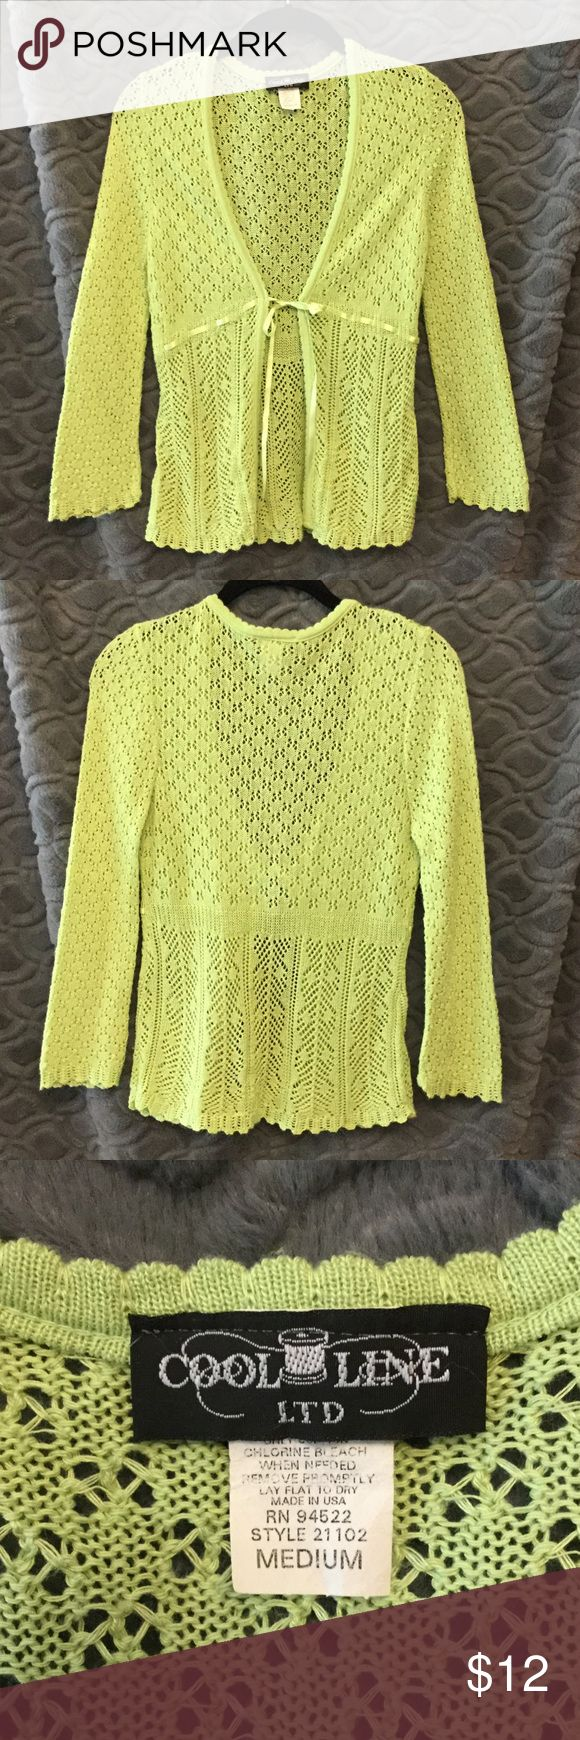 Cool Line lime green sweater, juniors size M Cool Line LTD sweater size M lime green ribbon for belt. Great condition. Cool Line Sweaters Shrugs & Ponchos